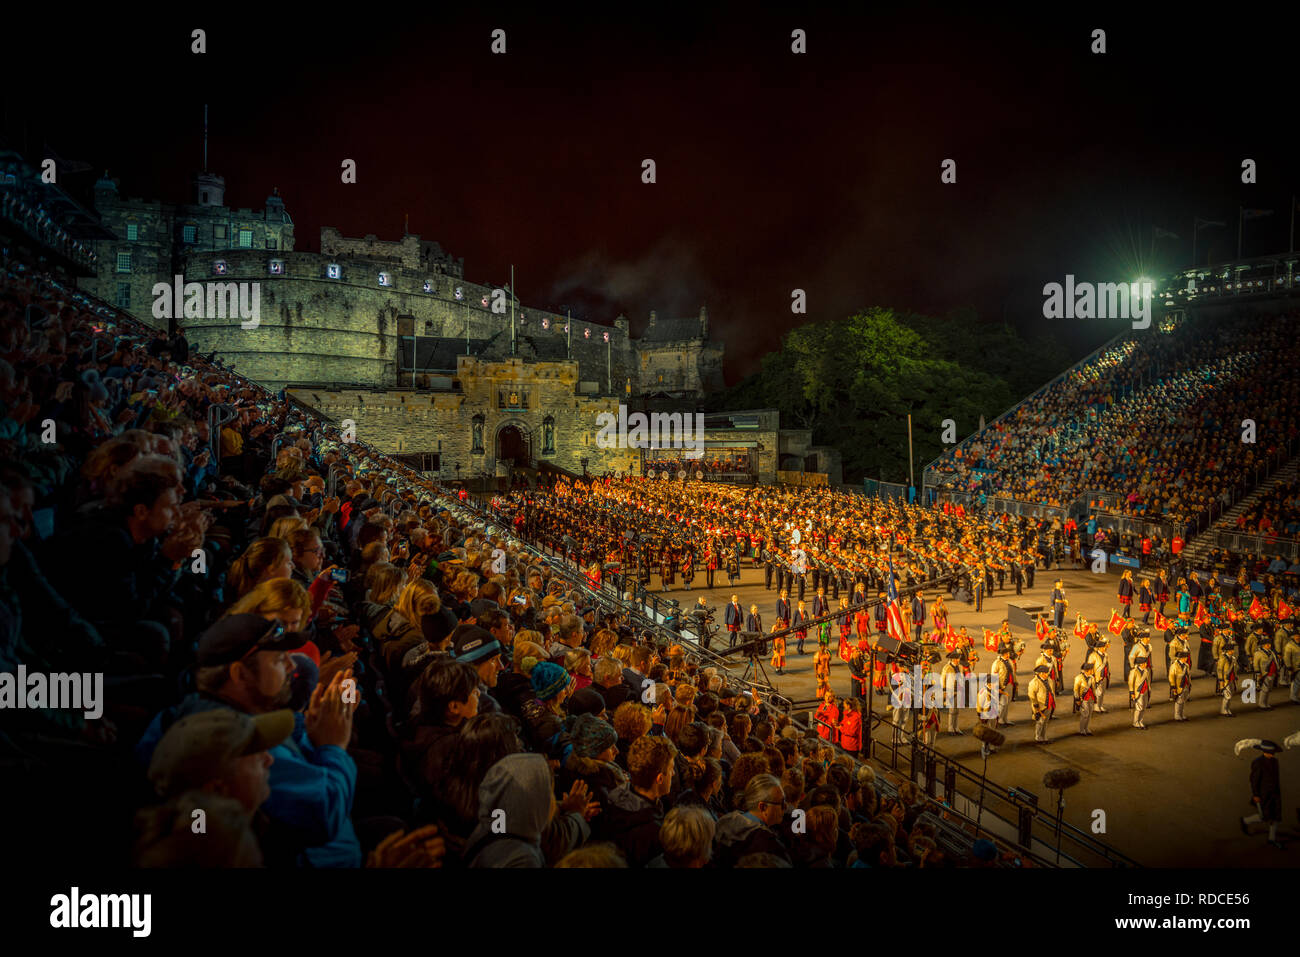 Europa, Großbritannien, Schottland, Edinburgh, Castle, Schloss, Royal Edinburgh Military Tattoo Stock Photo